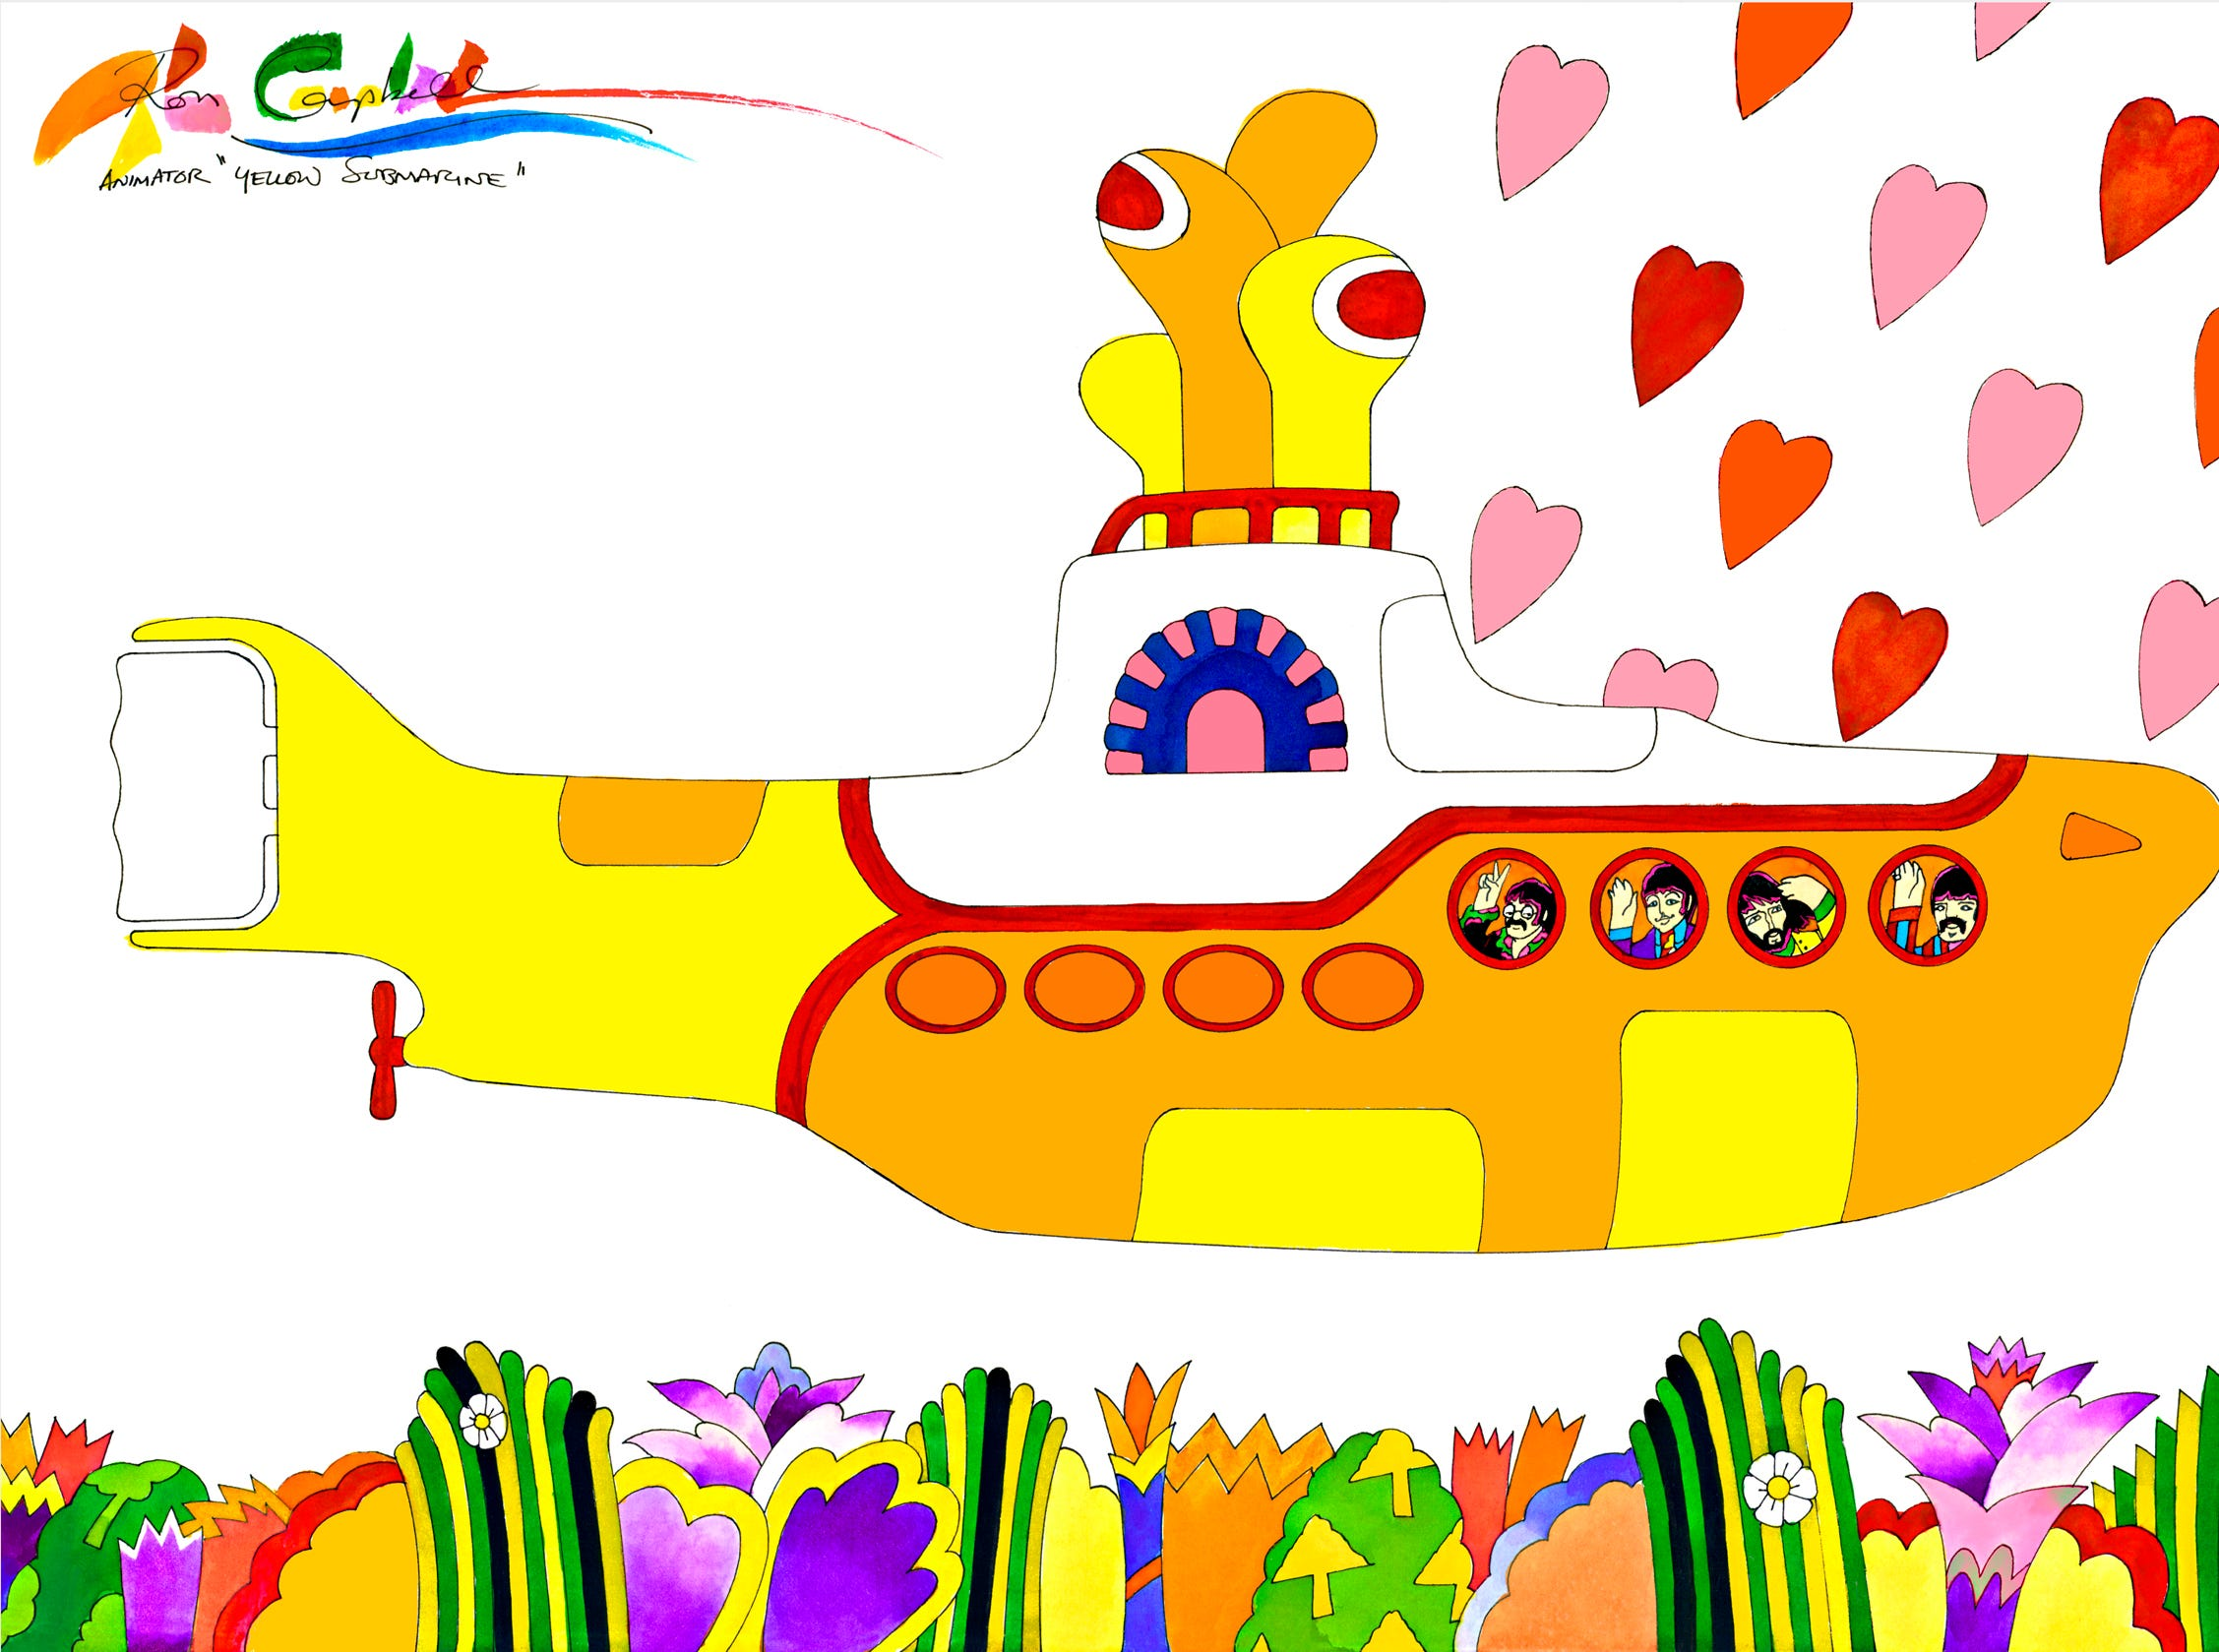 Ron Campbell helped draw 'Yellow Submarine' and 'Rugrats.' Now he's visiting Springfield.